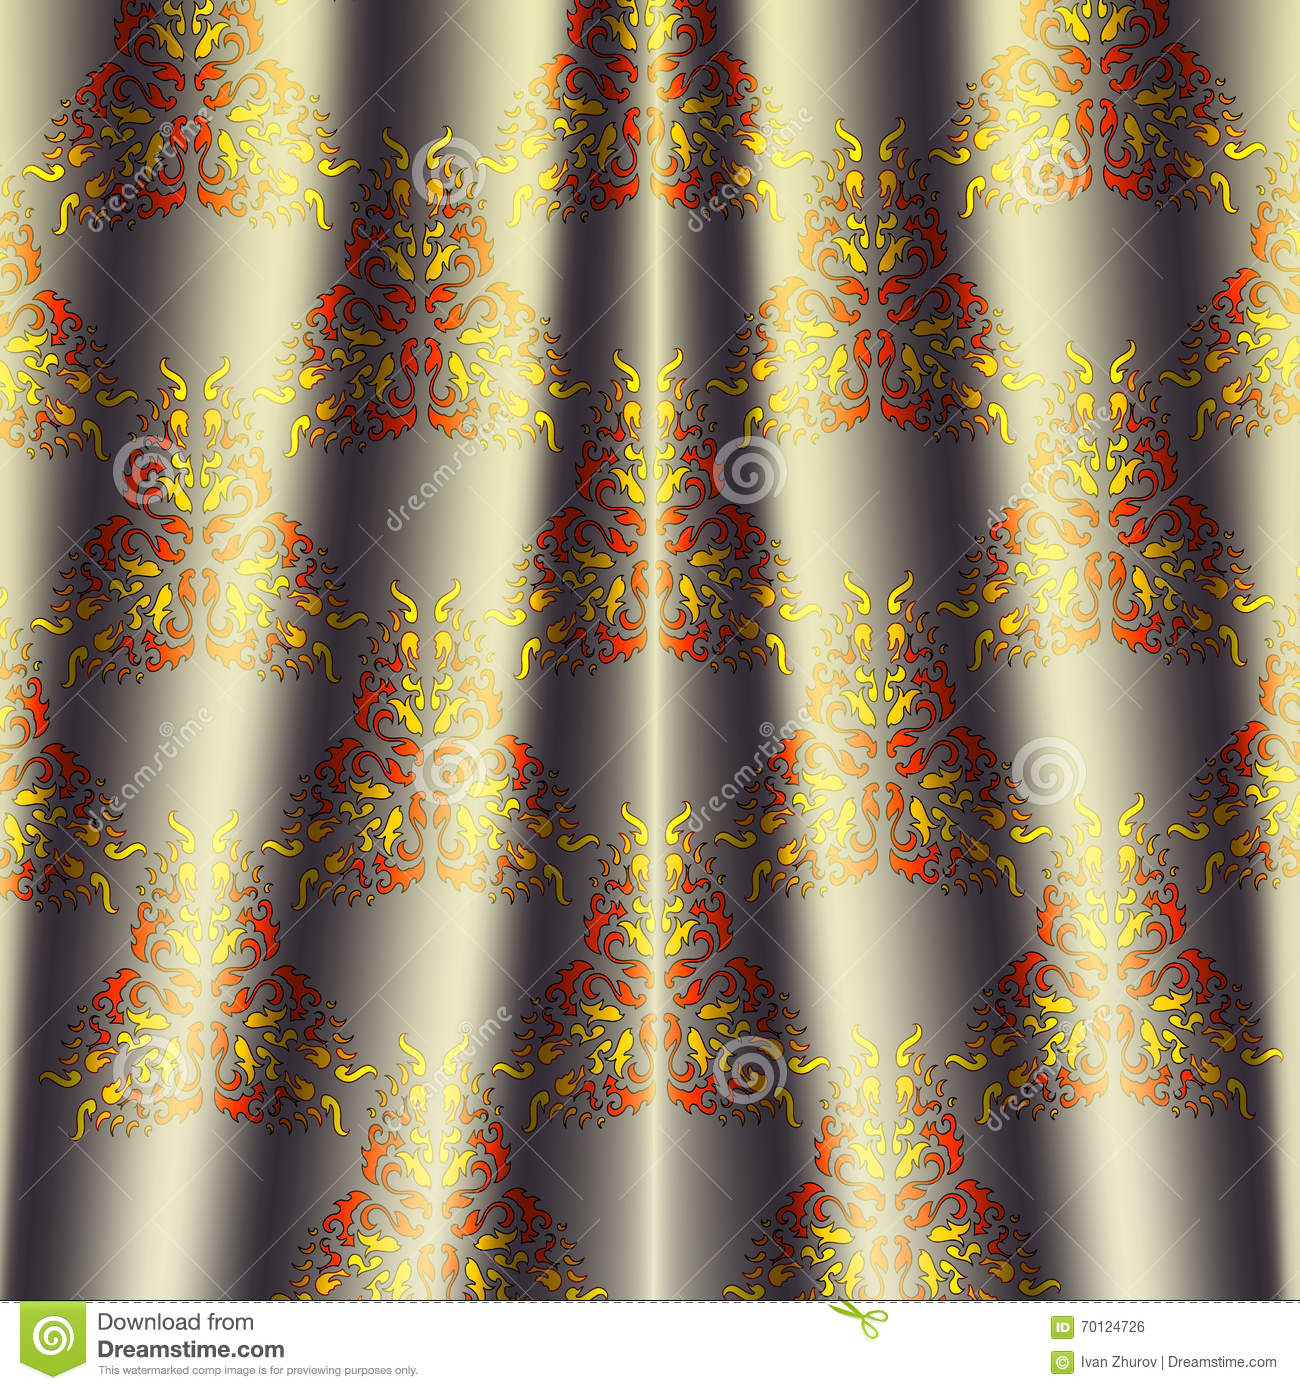 Fabric Cream Colored Curtain With Black Red Fire Pattern